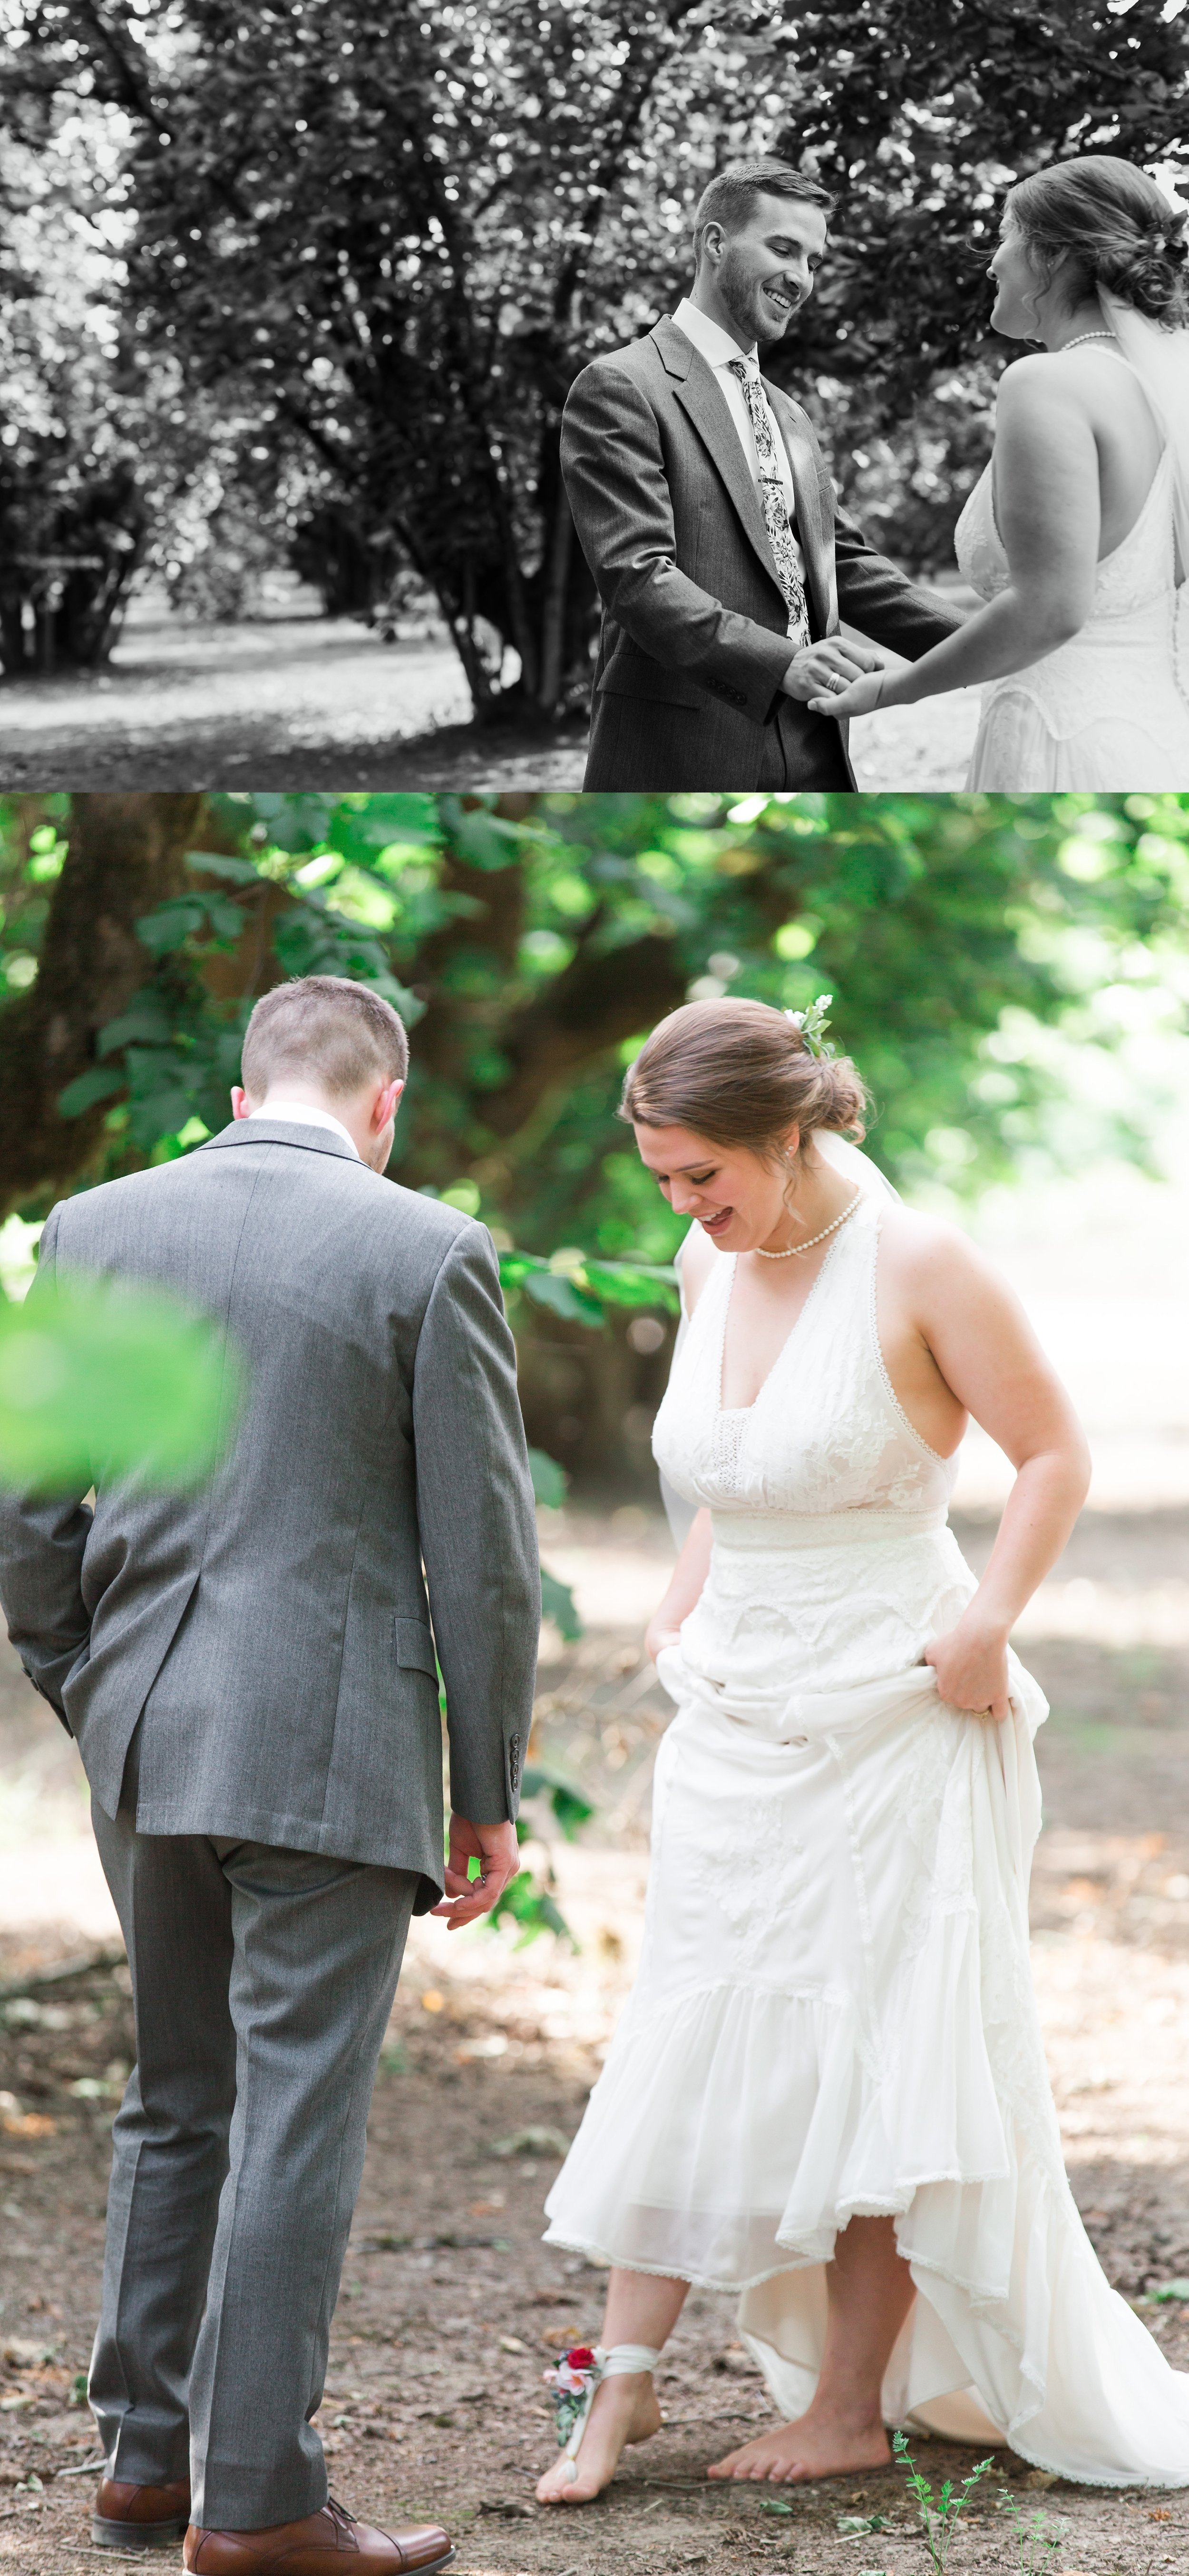 Barefoot Wedding Oklahoma City Wedding Photographer Jessica McBroom